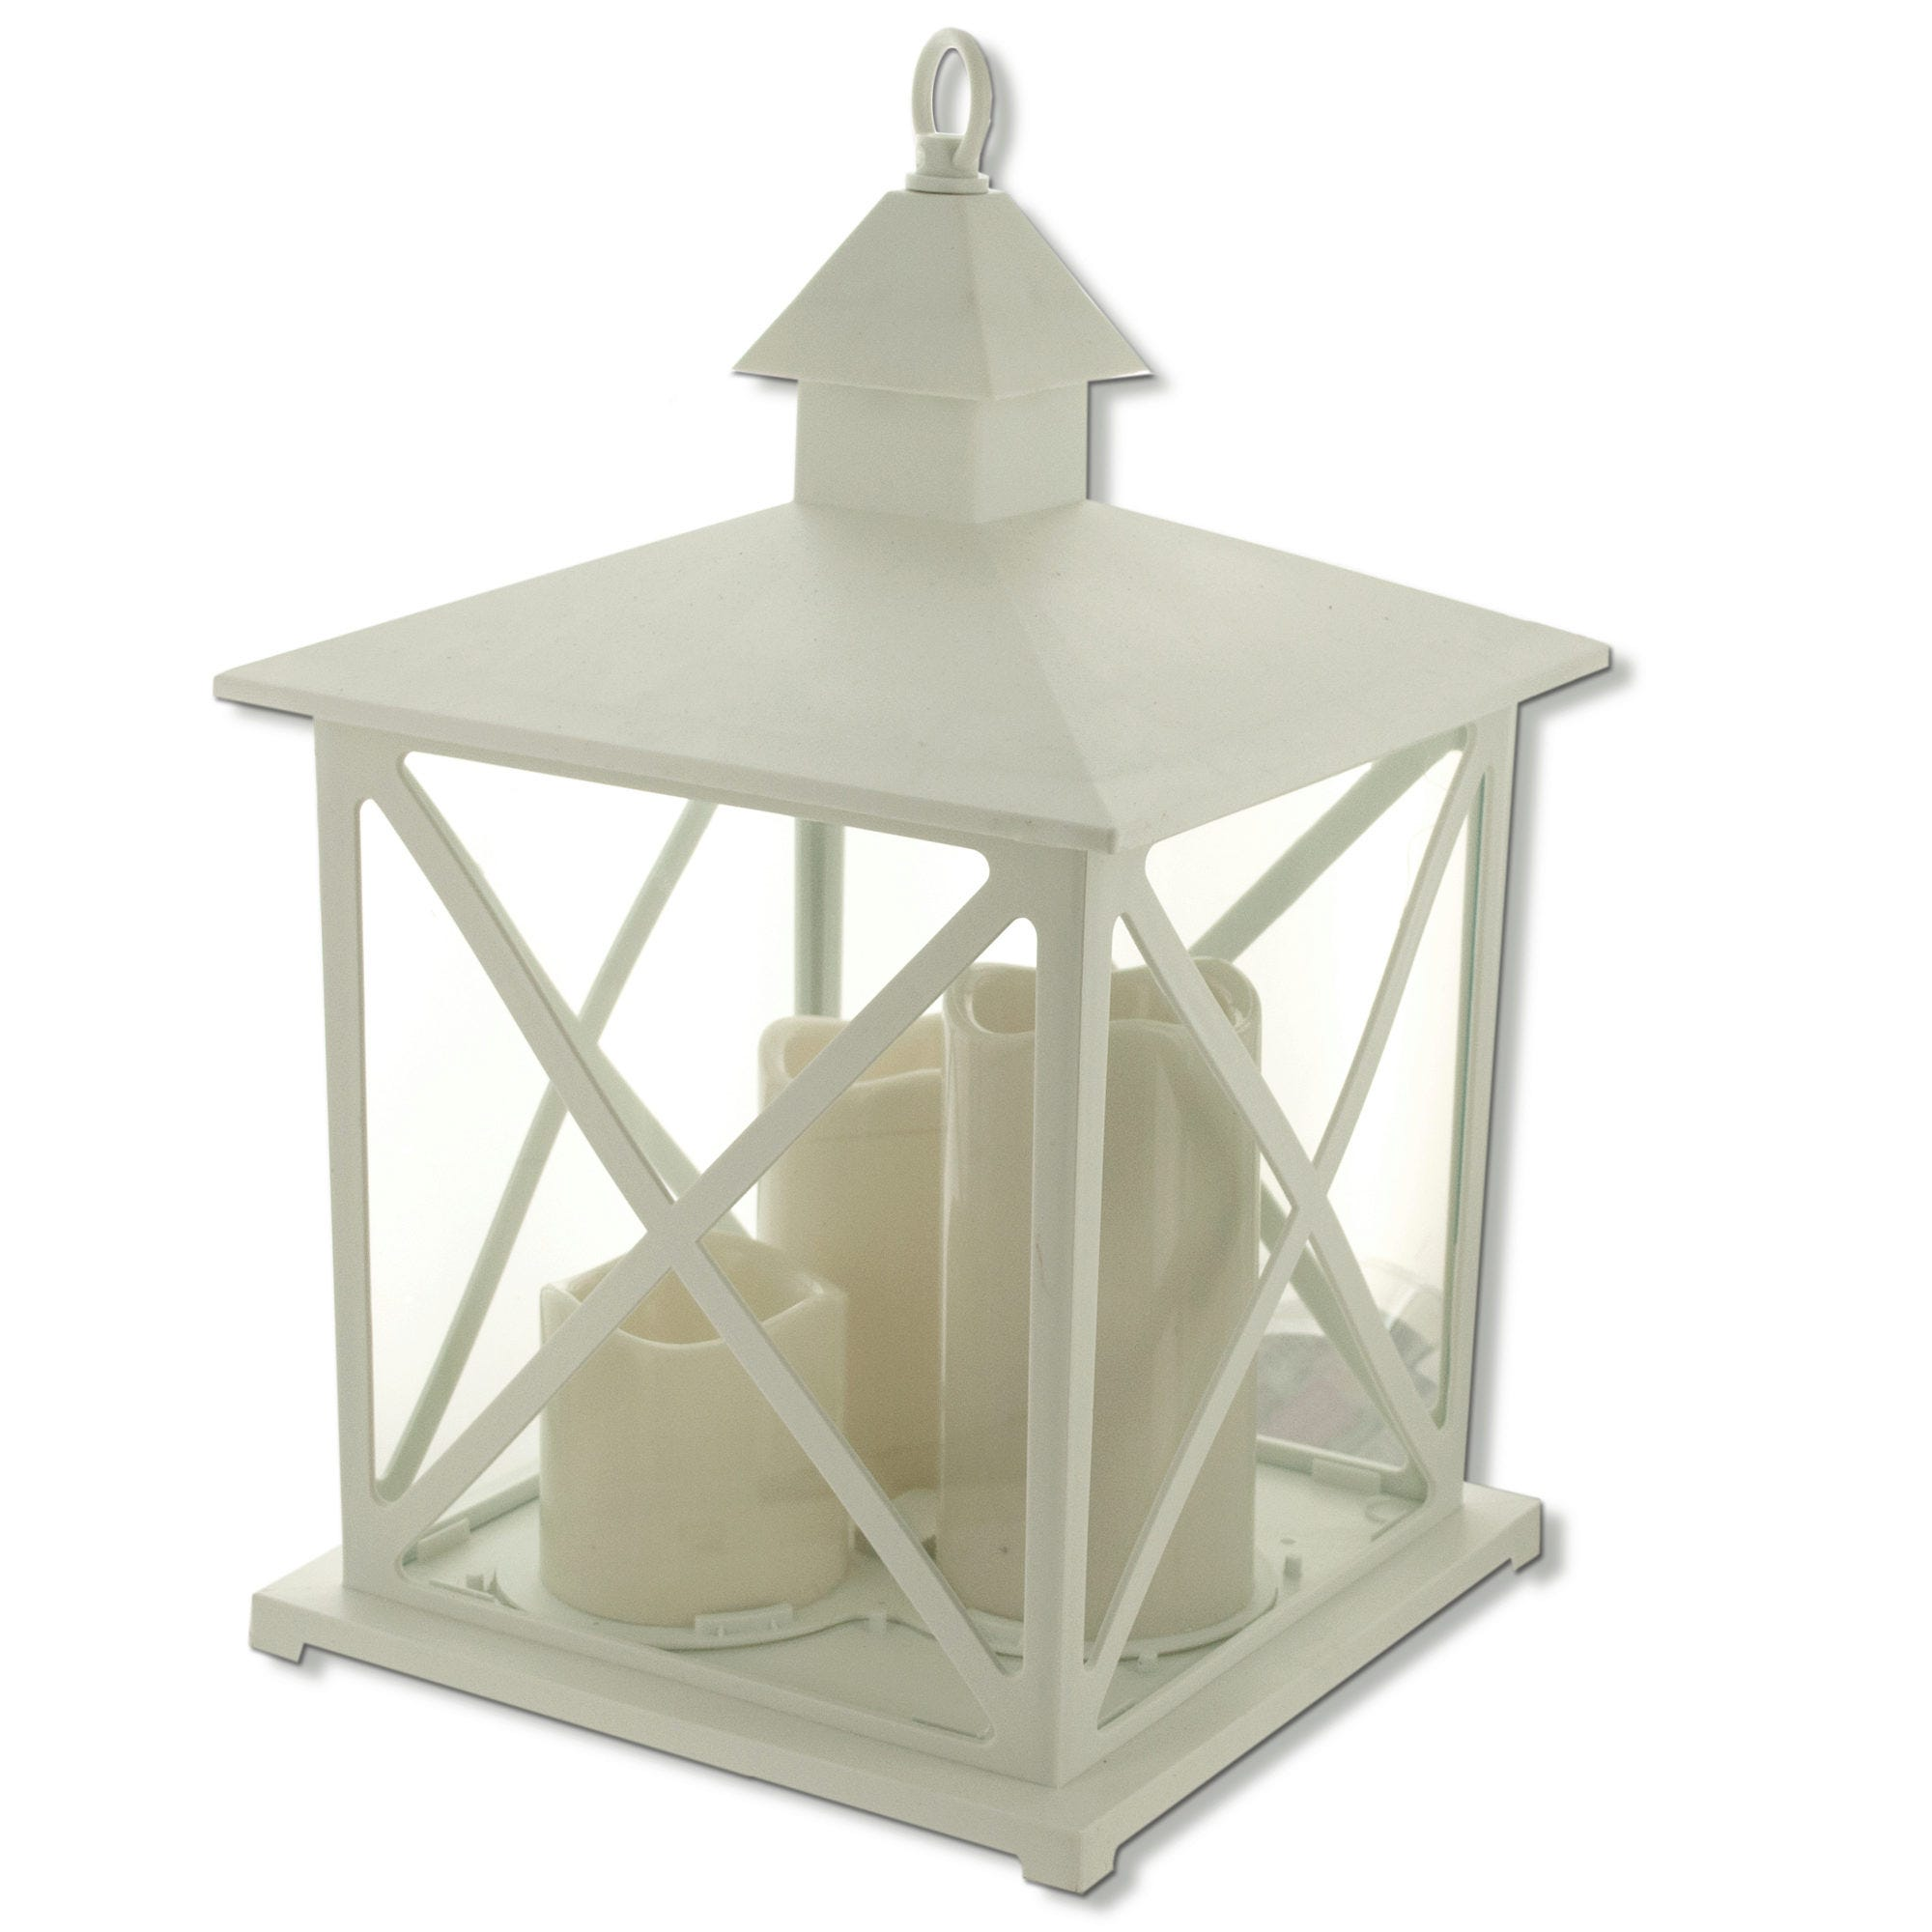 Large Decorative Flameless LED Lantern with 3 CANDLEs- Qty 4